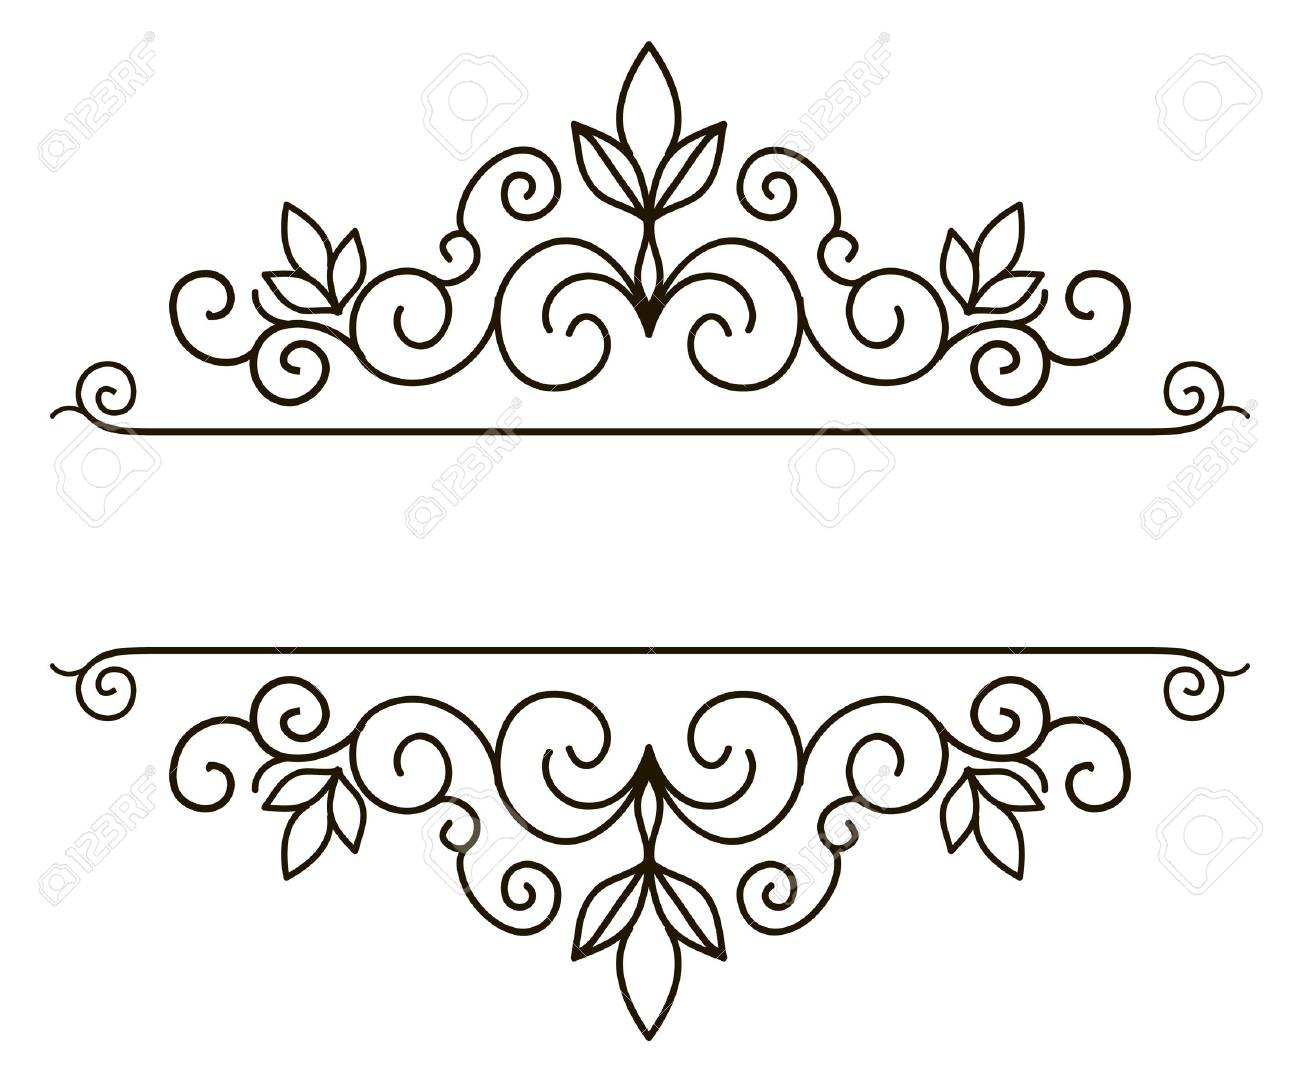 Vector decorative frame. Elegant element for design template, place for text. Floral border. Lace decor for birthday and greeting card, wedding invitation. - 56195314